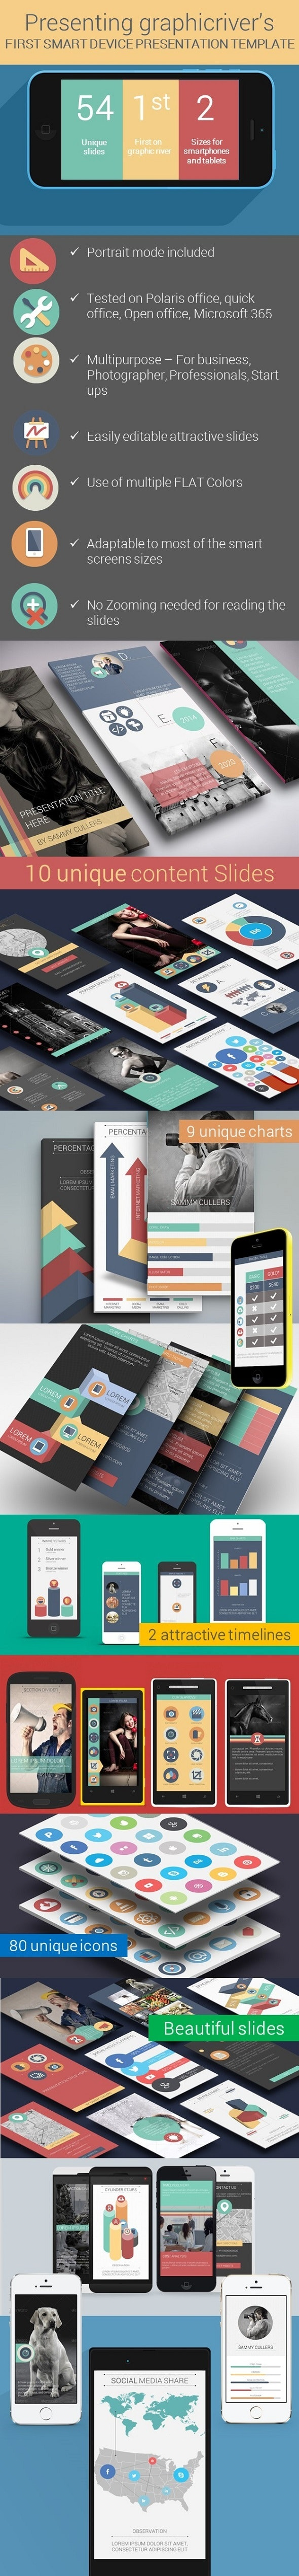 Flat Smart Device Presentation Template - Miscellaneous PowerPoint Templates